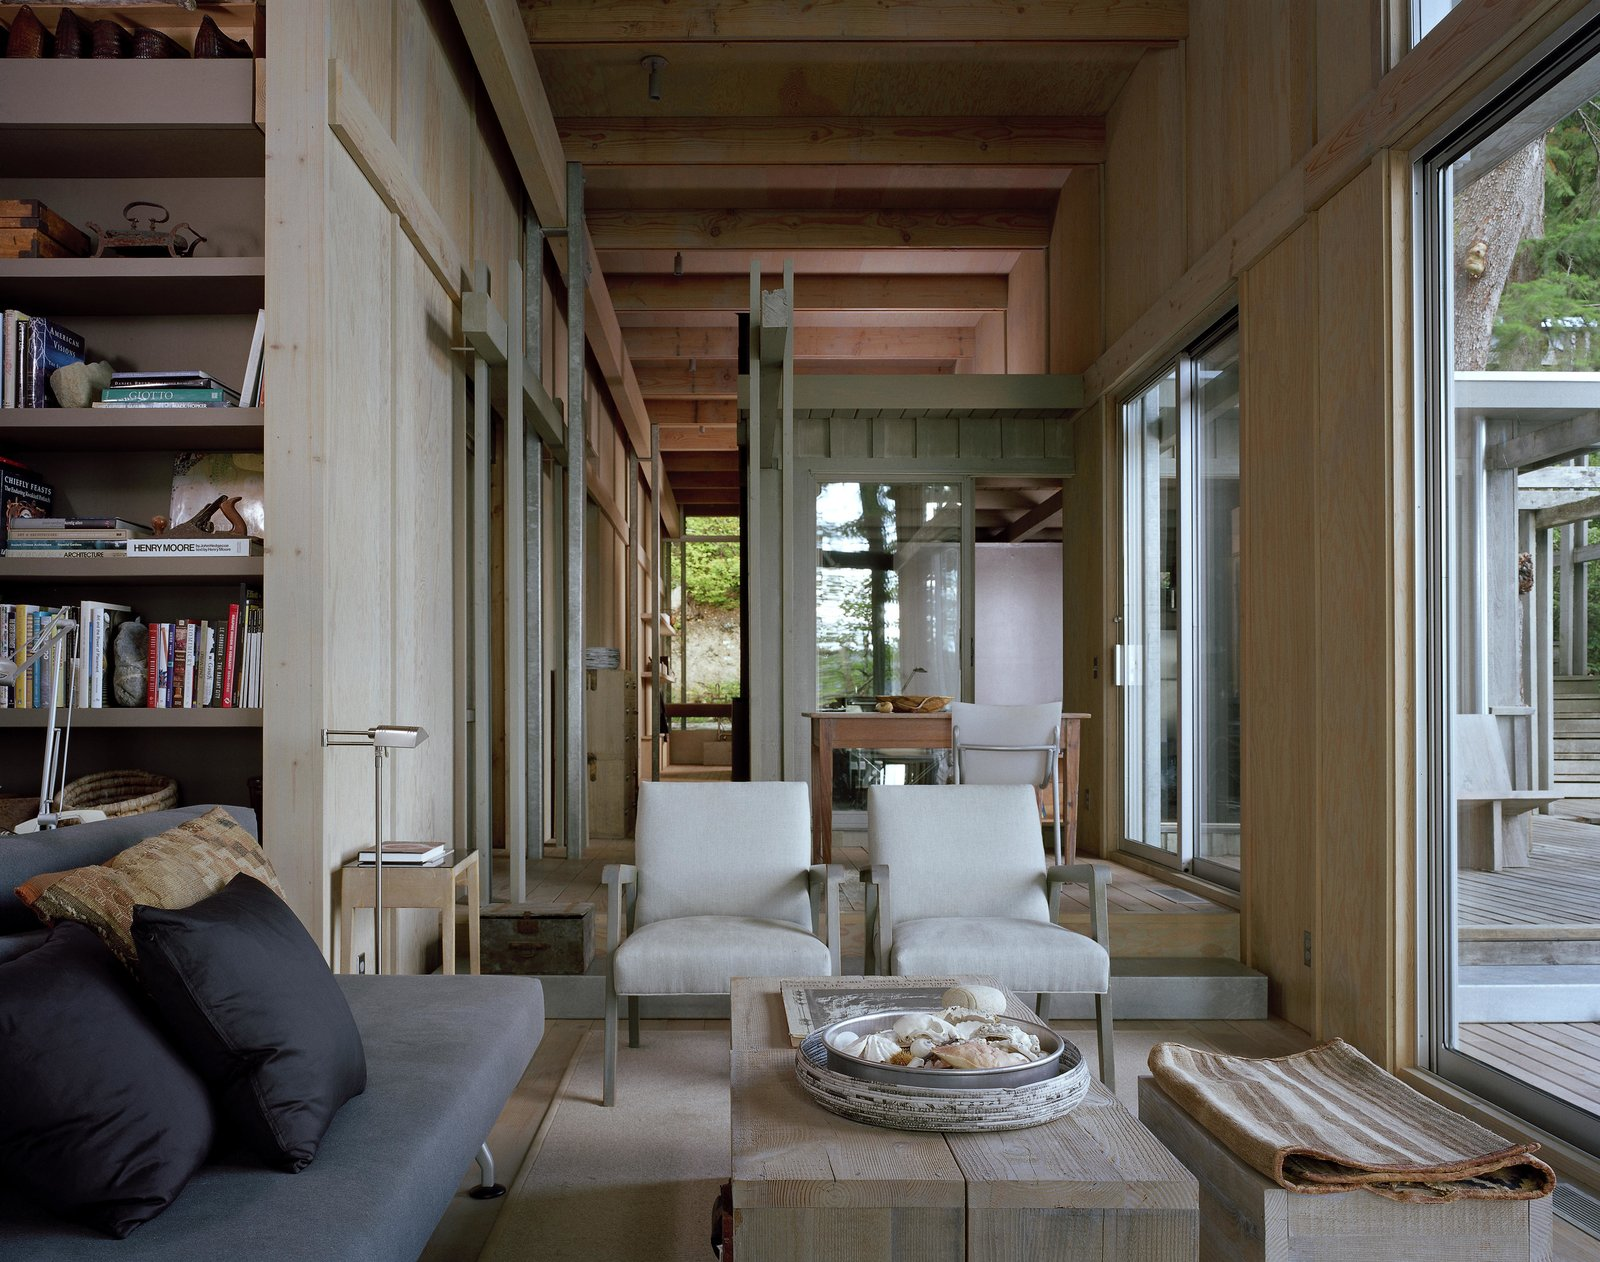 Cabin at Longbranch | Olson Kundig Tagged: Living Room, Chair, and Sofa.  Cabin in Longbranch by Olson Kundig